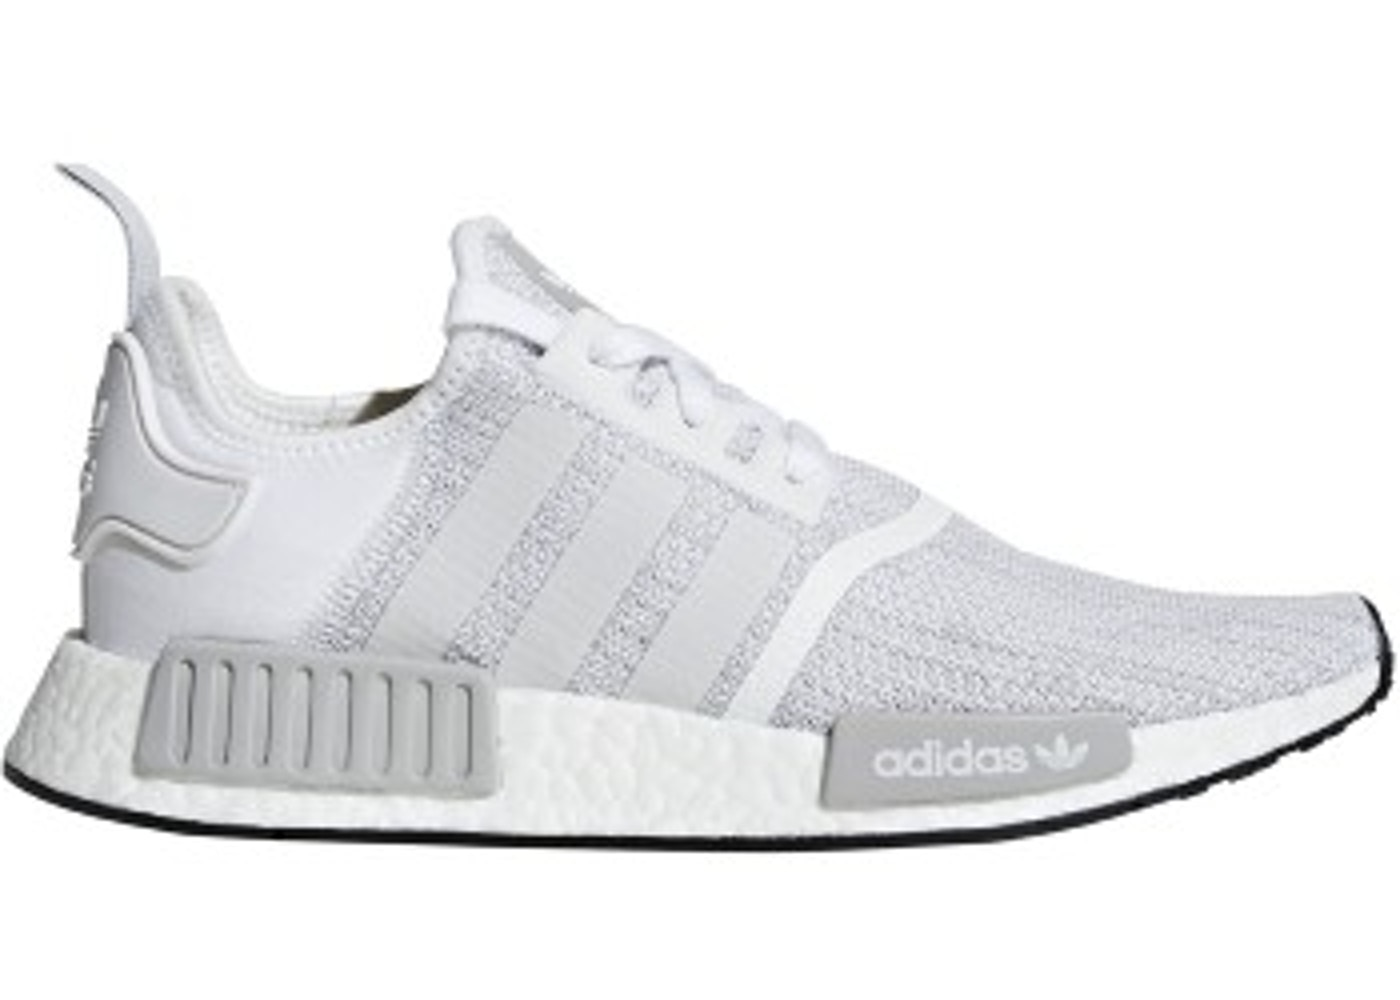 sports shoes 6403a 4e930 adidas NMD R1 Blizzard